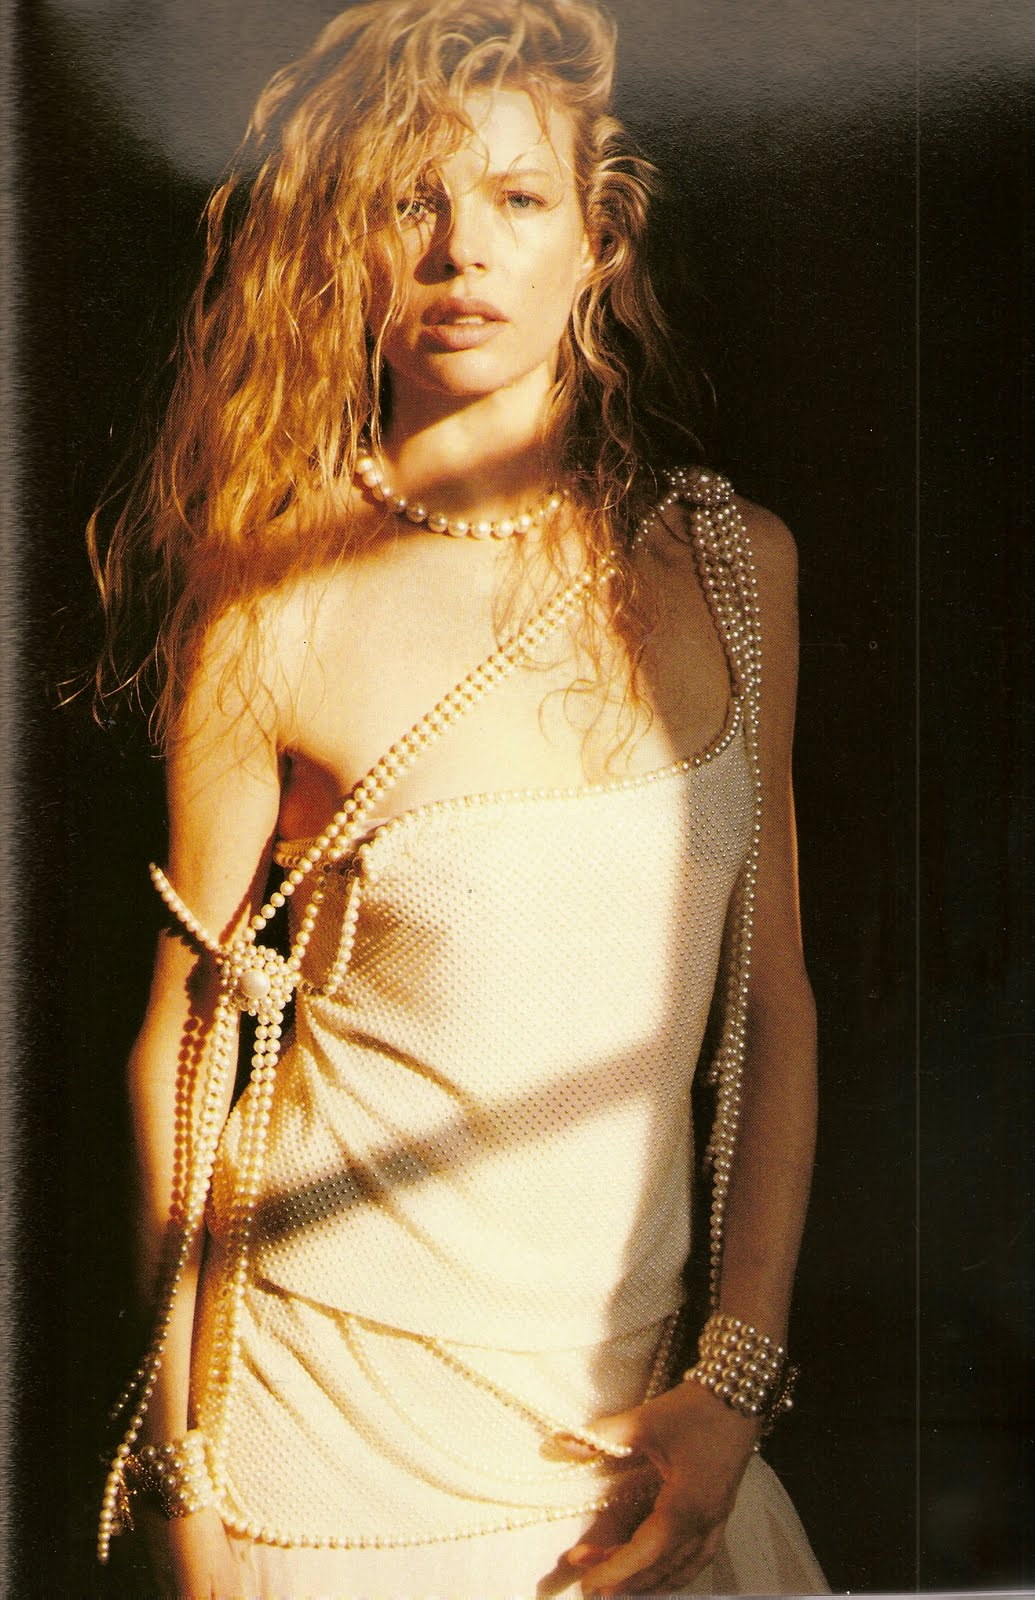 Kim Basinger For Vogue 1983: HISTORIES OF THINGS TO COME